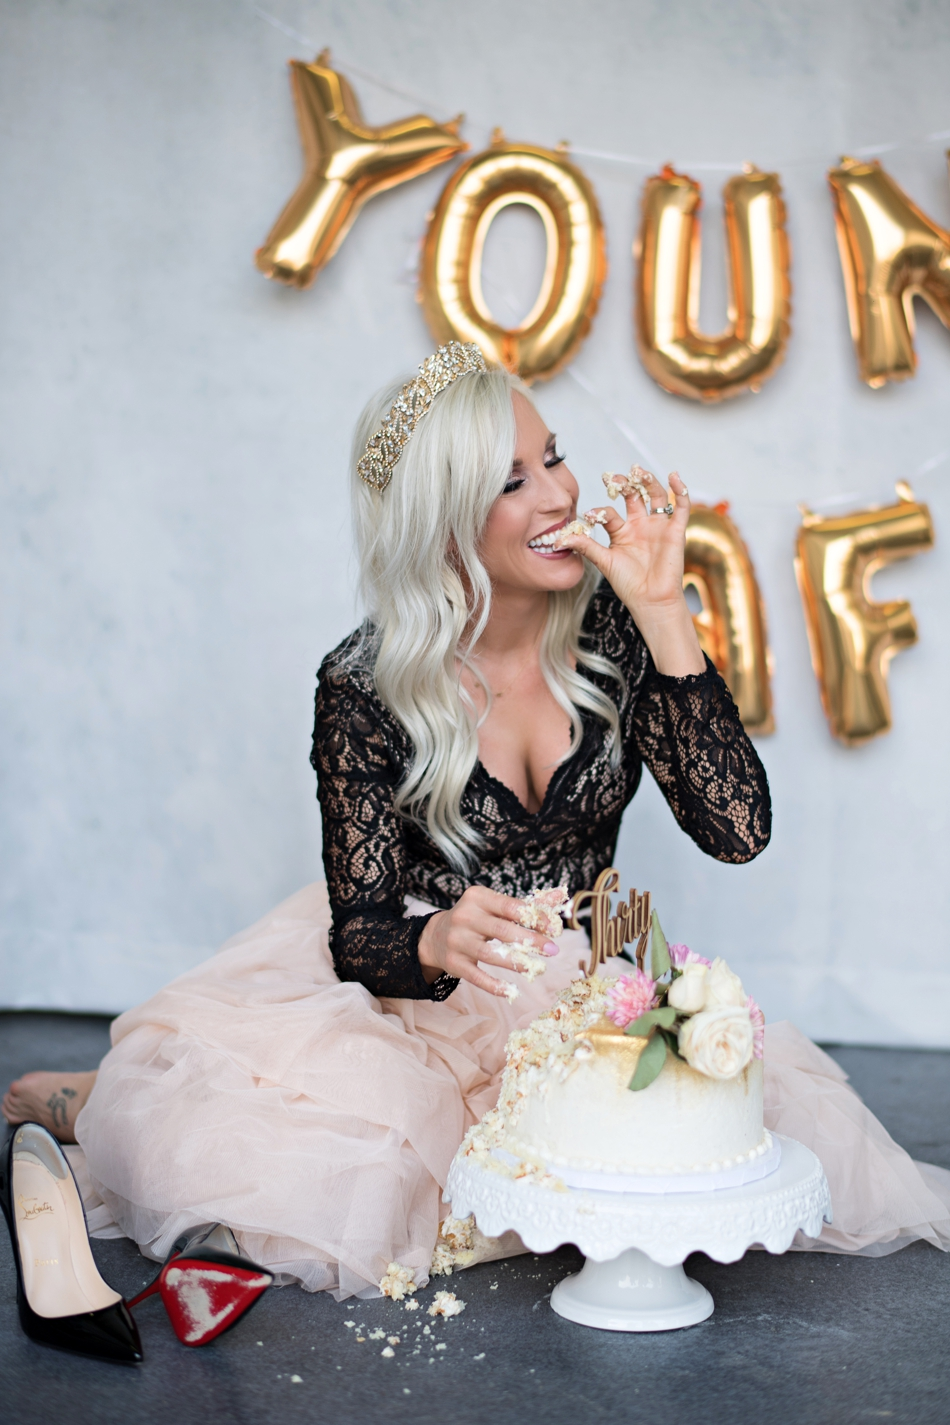 30th Birthday Cake Smash Orlando Wedding Photographer